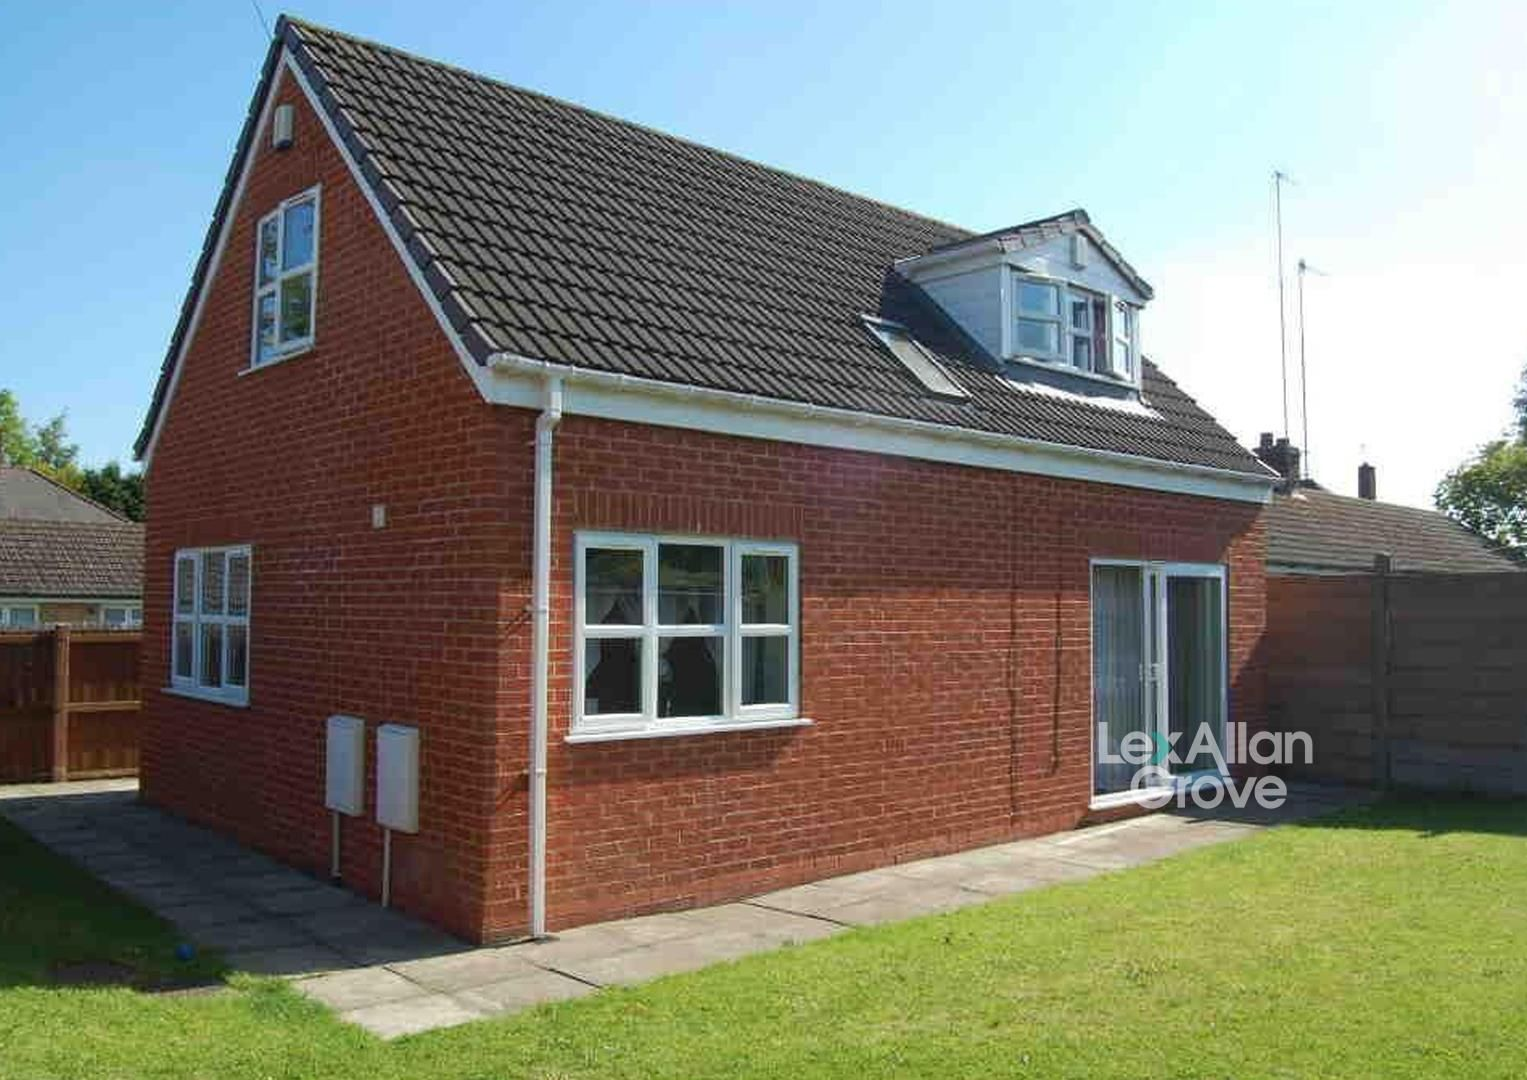 2 bed detached for sale, B64